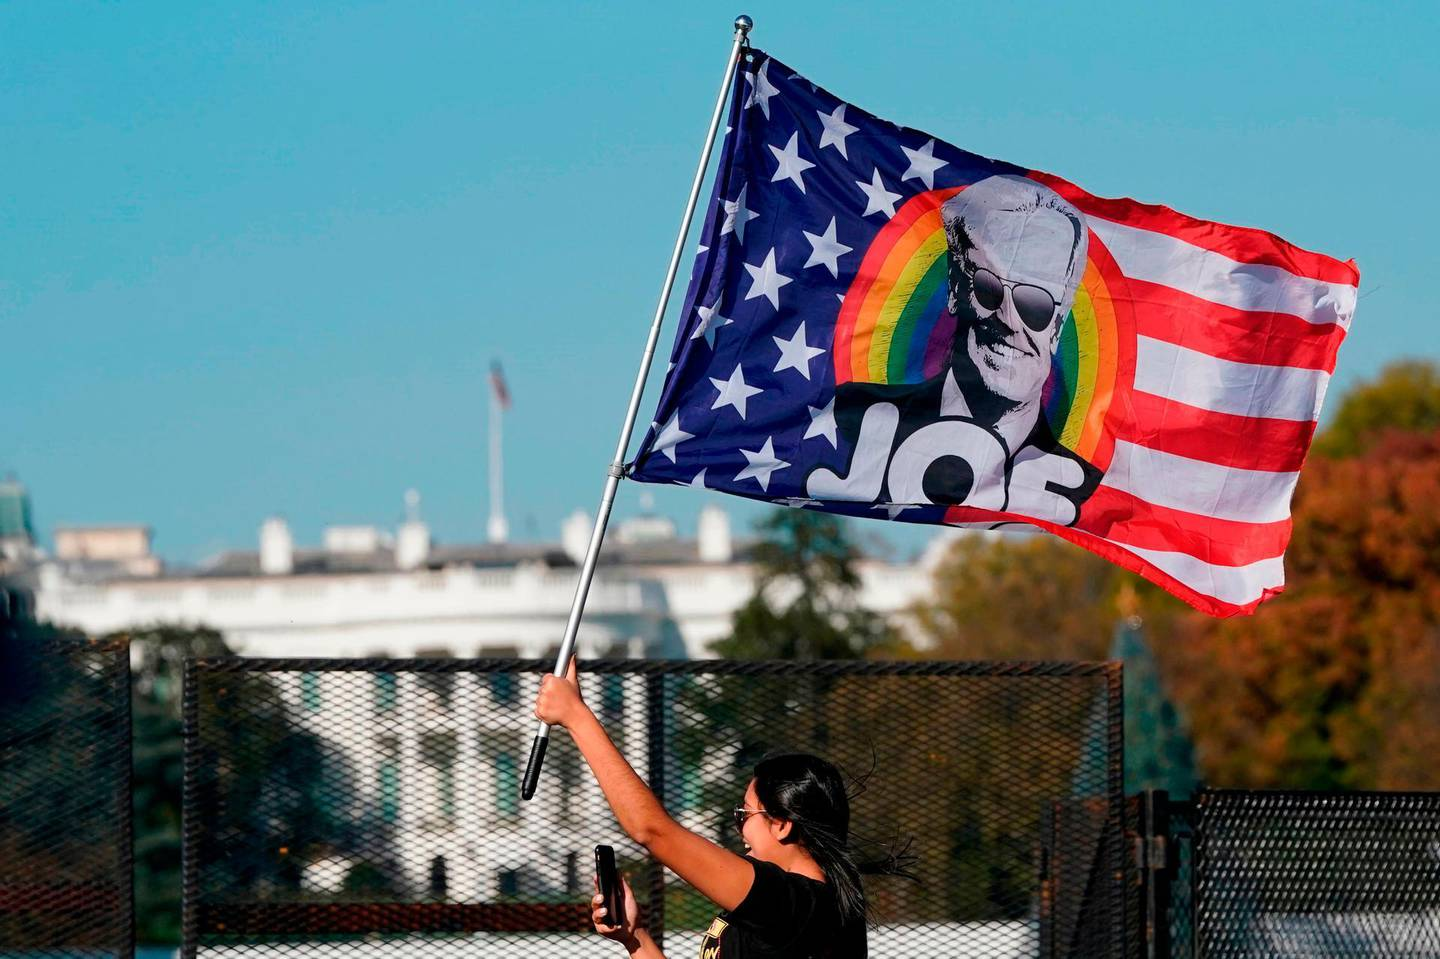 (FILES) In this file photo taken on November 07, 2020, a woman waves a Joe Biden flag as people celebrate on Black Lives Matter Plaza across from the White House in Washington, DC, after Biden was declared the winner of the 2020 presidential election.  Sentiment among Republican consumers plunged this month after US President Donald Trump lost his bid for a second term, according to a survey released on November 13, 2020. Fears rise that surging Covid-19 cases will worsen the economy also hit the University of Michigan's consumer sentiment index which fell to 77.0 early this month, a worse-than-expected drop of nearly six percent from October. / AFP / Alex Edelman